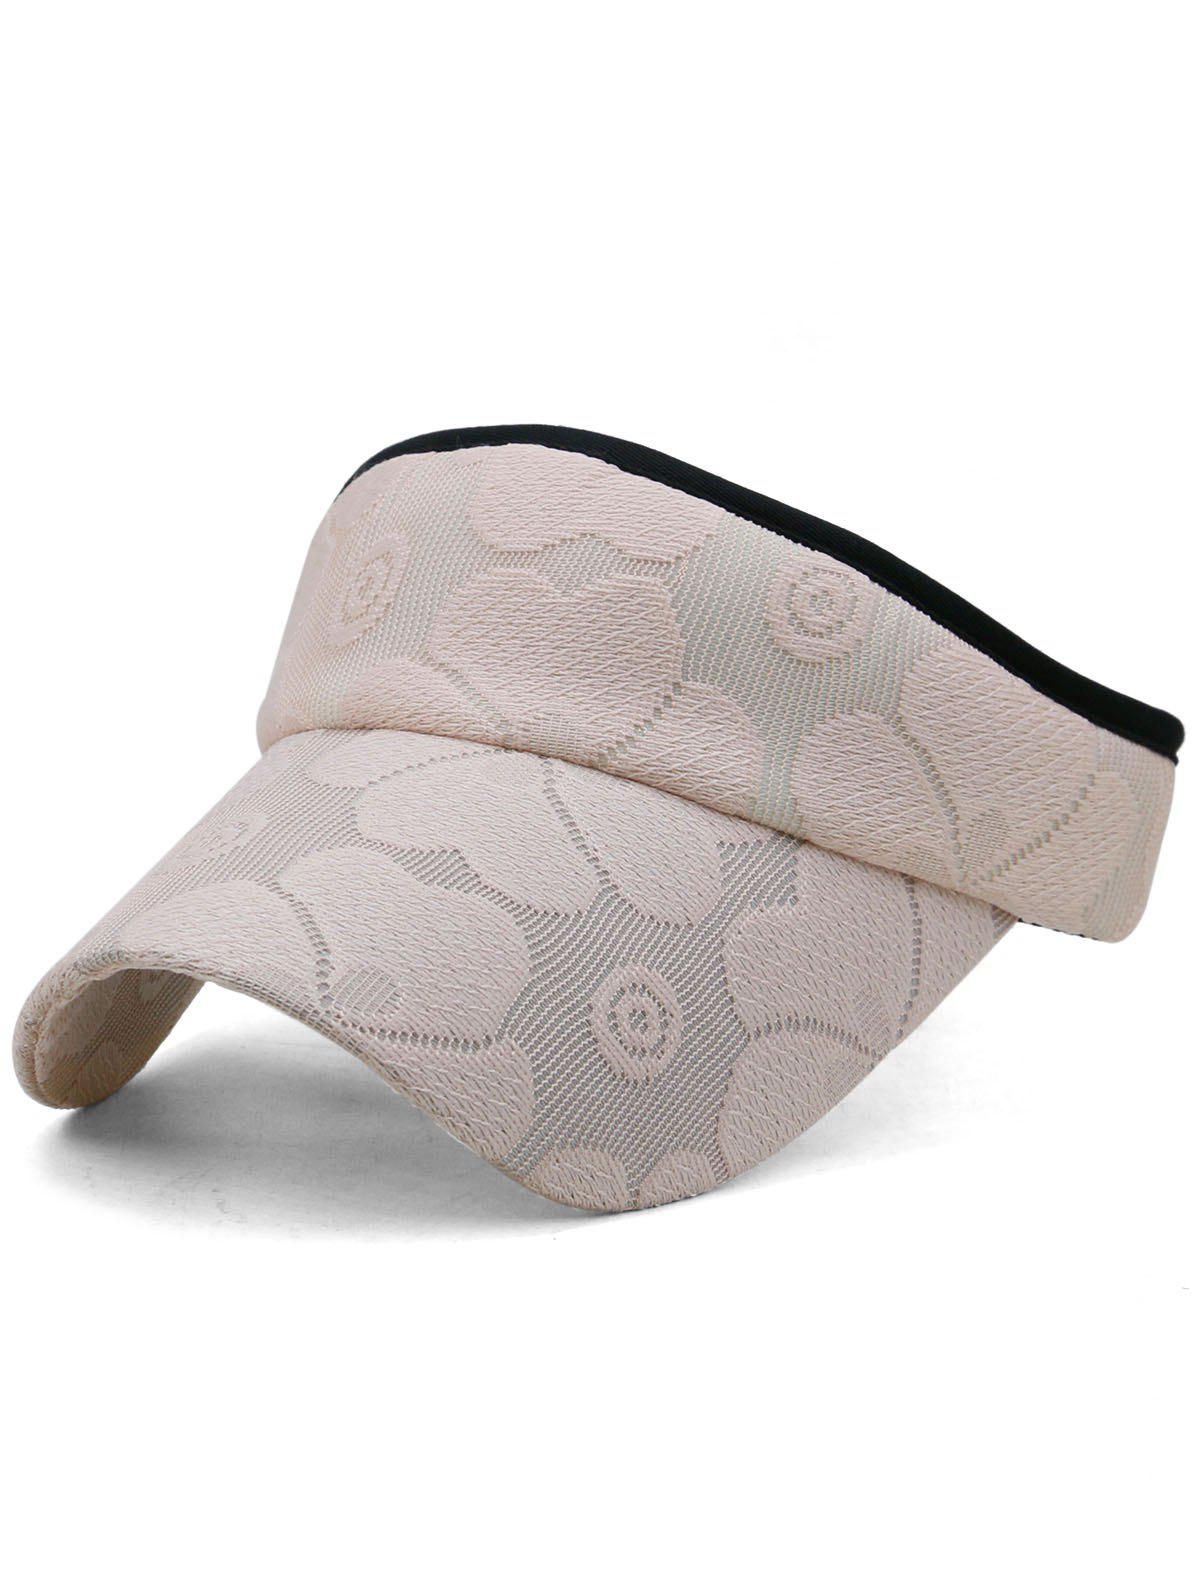 Lightweight Floral Embroidered Open Top Sunscreen Hat - LIGHT PINK